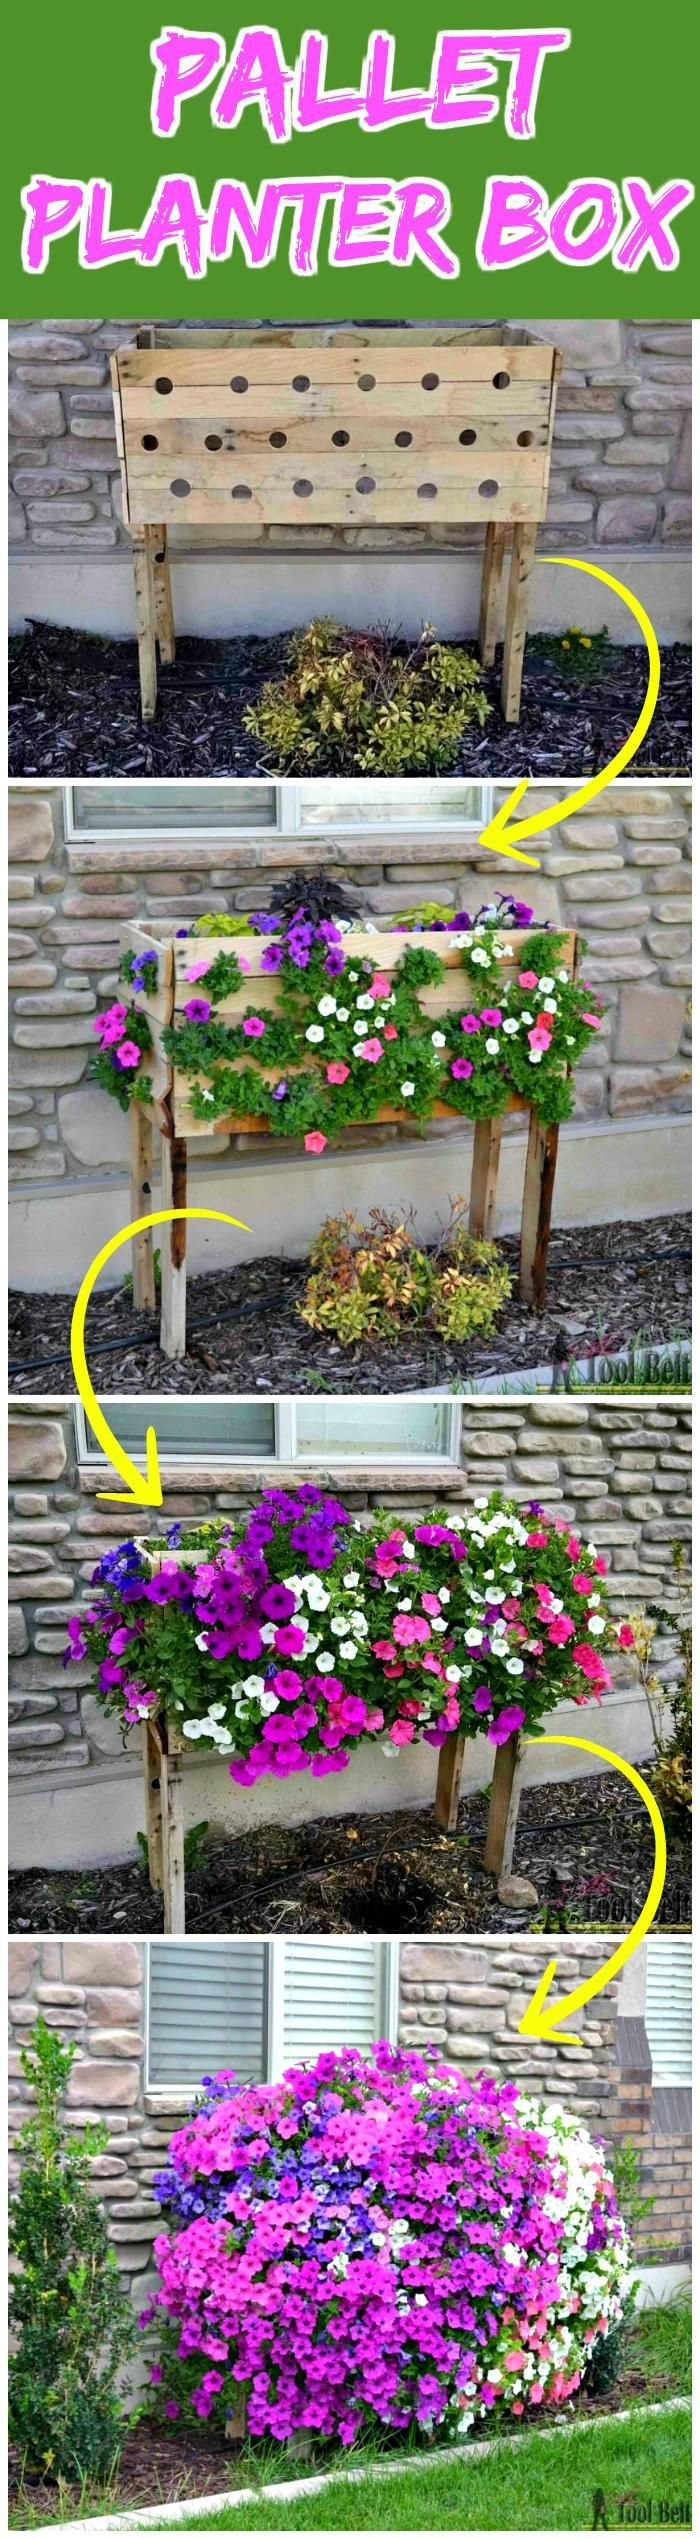 Diy pallet garden projects diy rustic pallet planter box creative - 150 Best Diy Pallet Projects And Pallet Furniture Crafts Page 38 Of 75 Pallet Planter Boxplanter